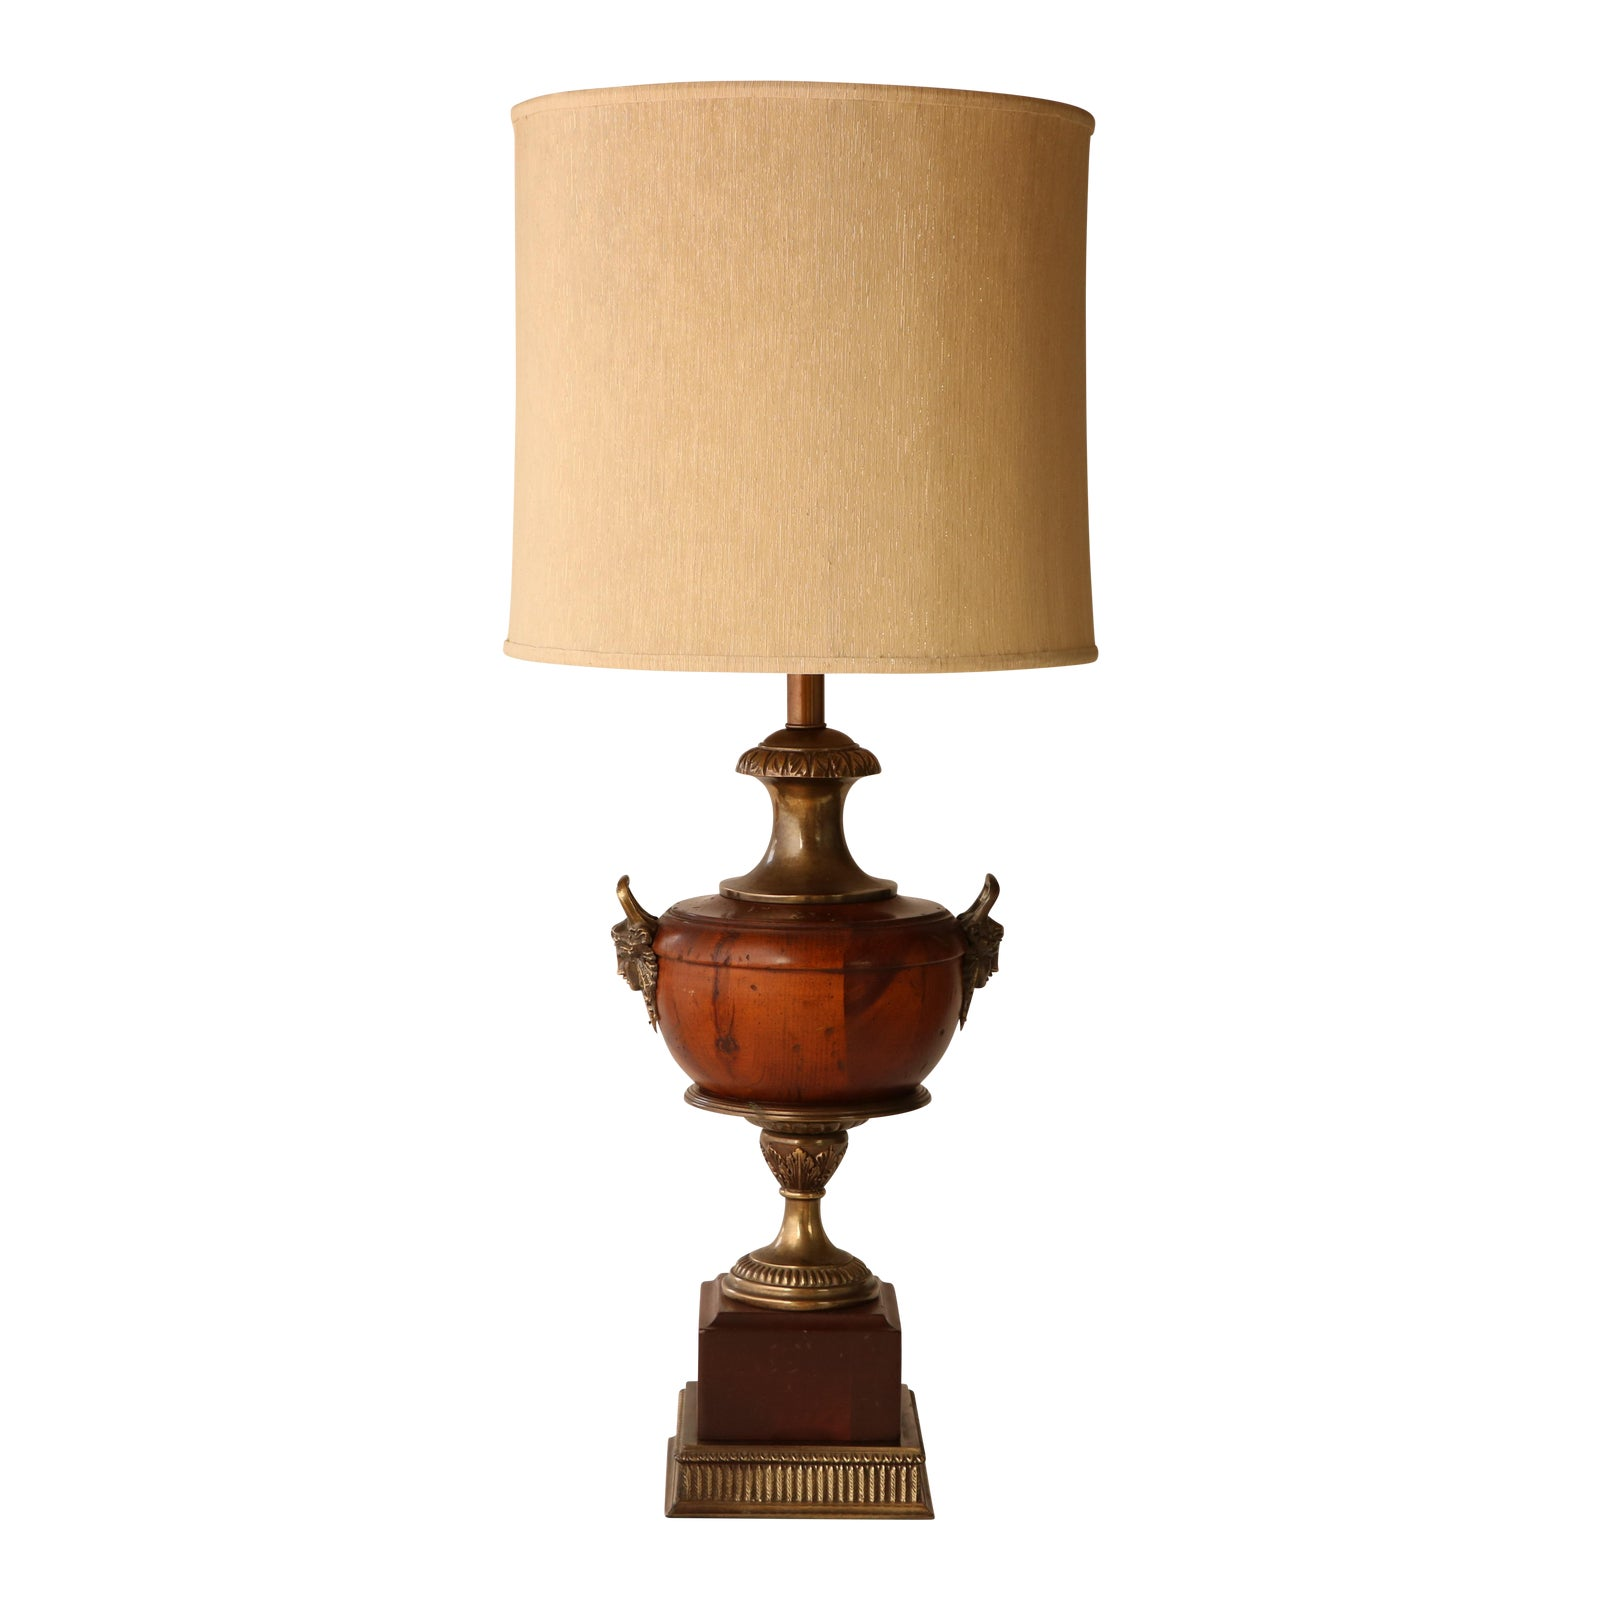 Frederick cooper wooden urn trophy lamp chairish